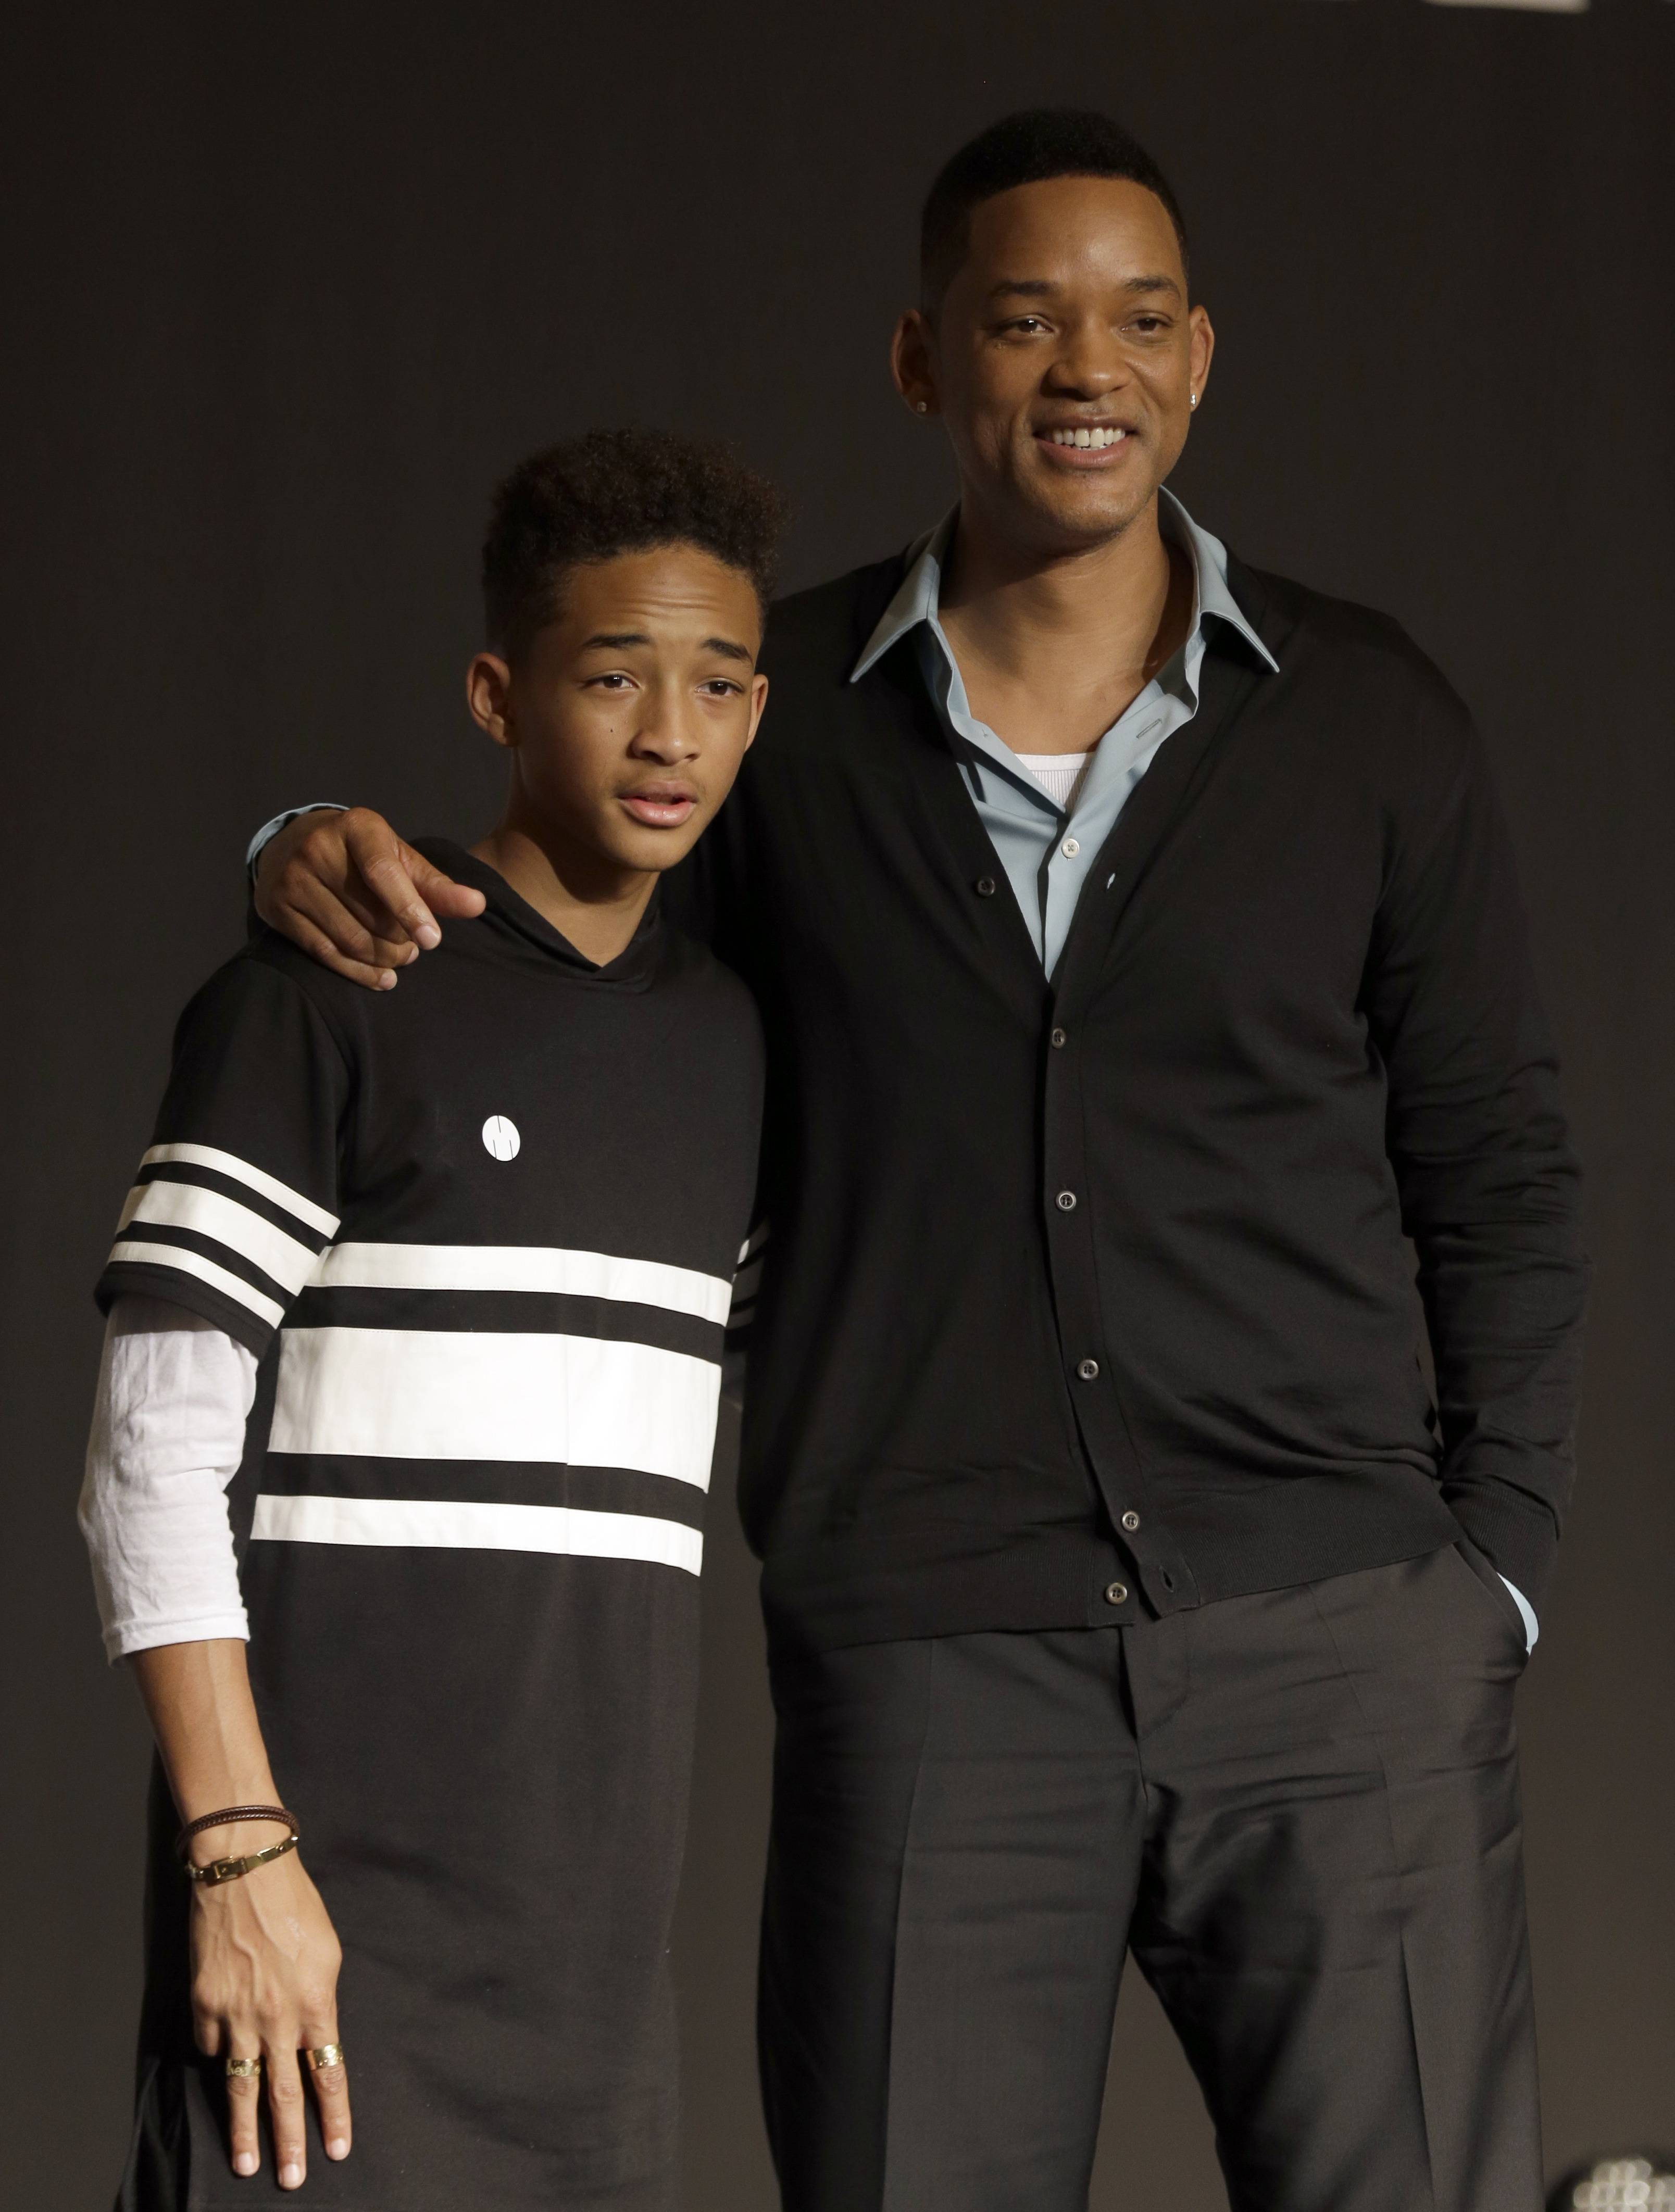 "FILE - In this May 7, 2013 file photo, U.S. actor Will Smith and his son Jaden pose for the media after press conference for their film ""After Earth"" in Seoul, South Korea. Both actors were awarded Razzies for the film. Jaden was selected as worst actor for his role in the sci-fi flop about a father and son stranded on an untamed earth, while the elder Smith was chosen as worst supporting actor at the Golden Raspberry Awards, on Saturday, March 1, 2014, which lampoons Hollywood's awards season on the eve of the Oscars."